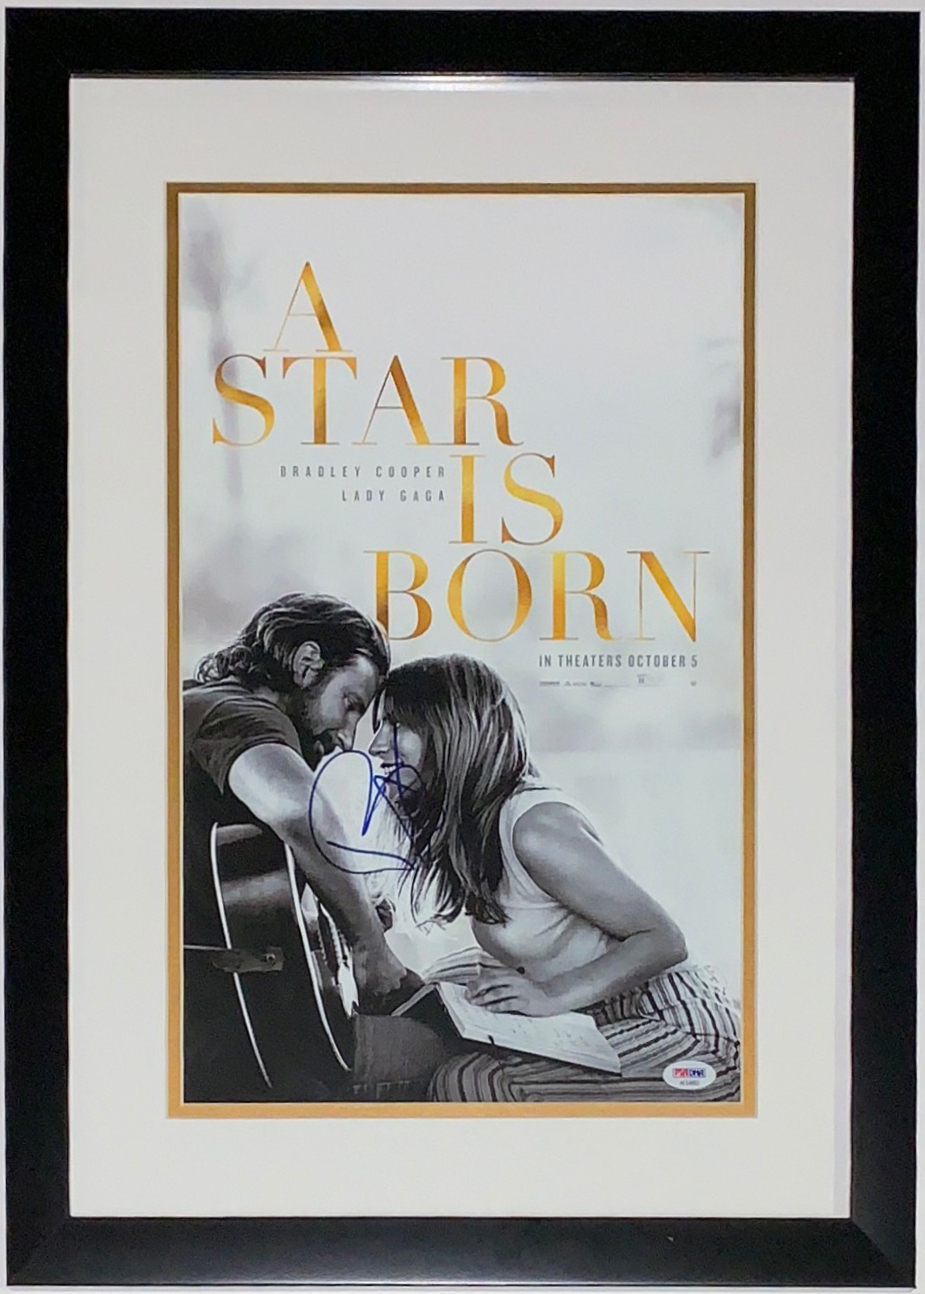 Bradley Cooper Signed A Star is Born Movie Premier Poster - PSA DNA COA Authenticated - Professionally Framed